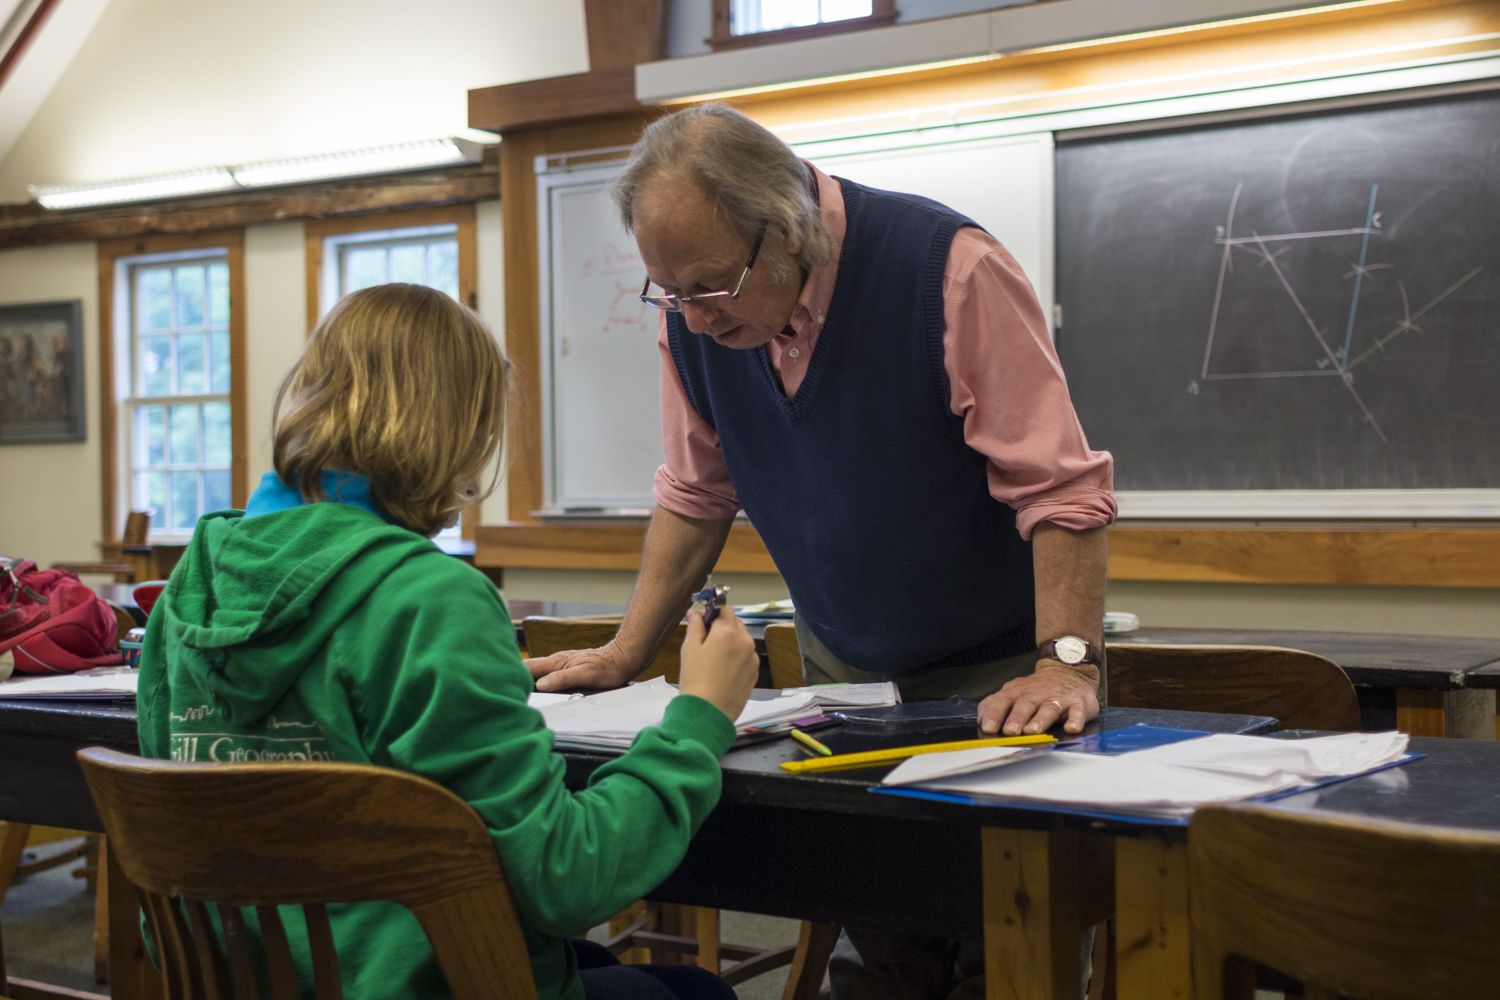 Geometry teacher Robert Sim works with Alise to solve her question.